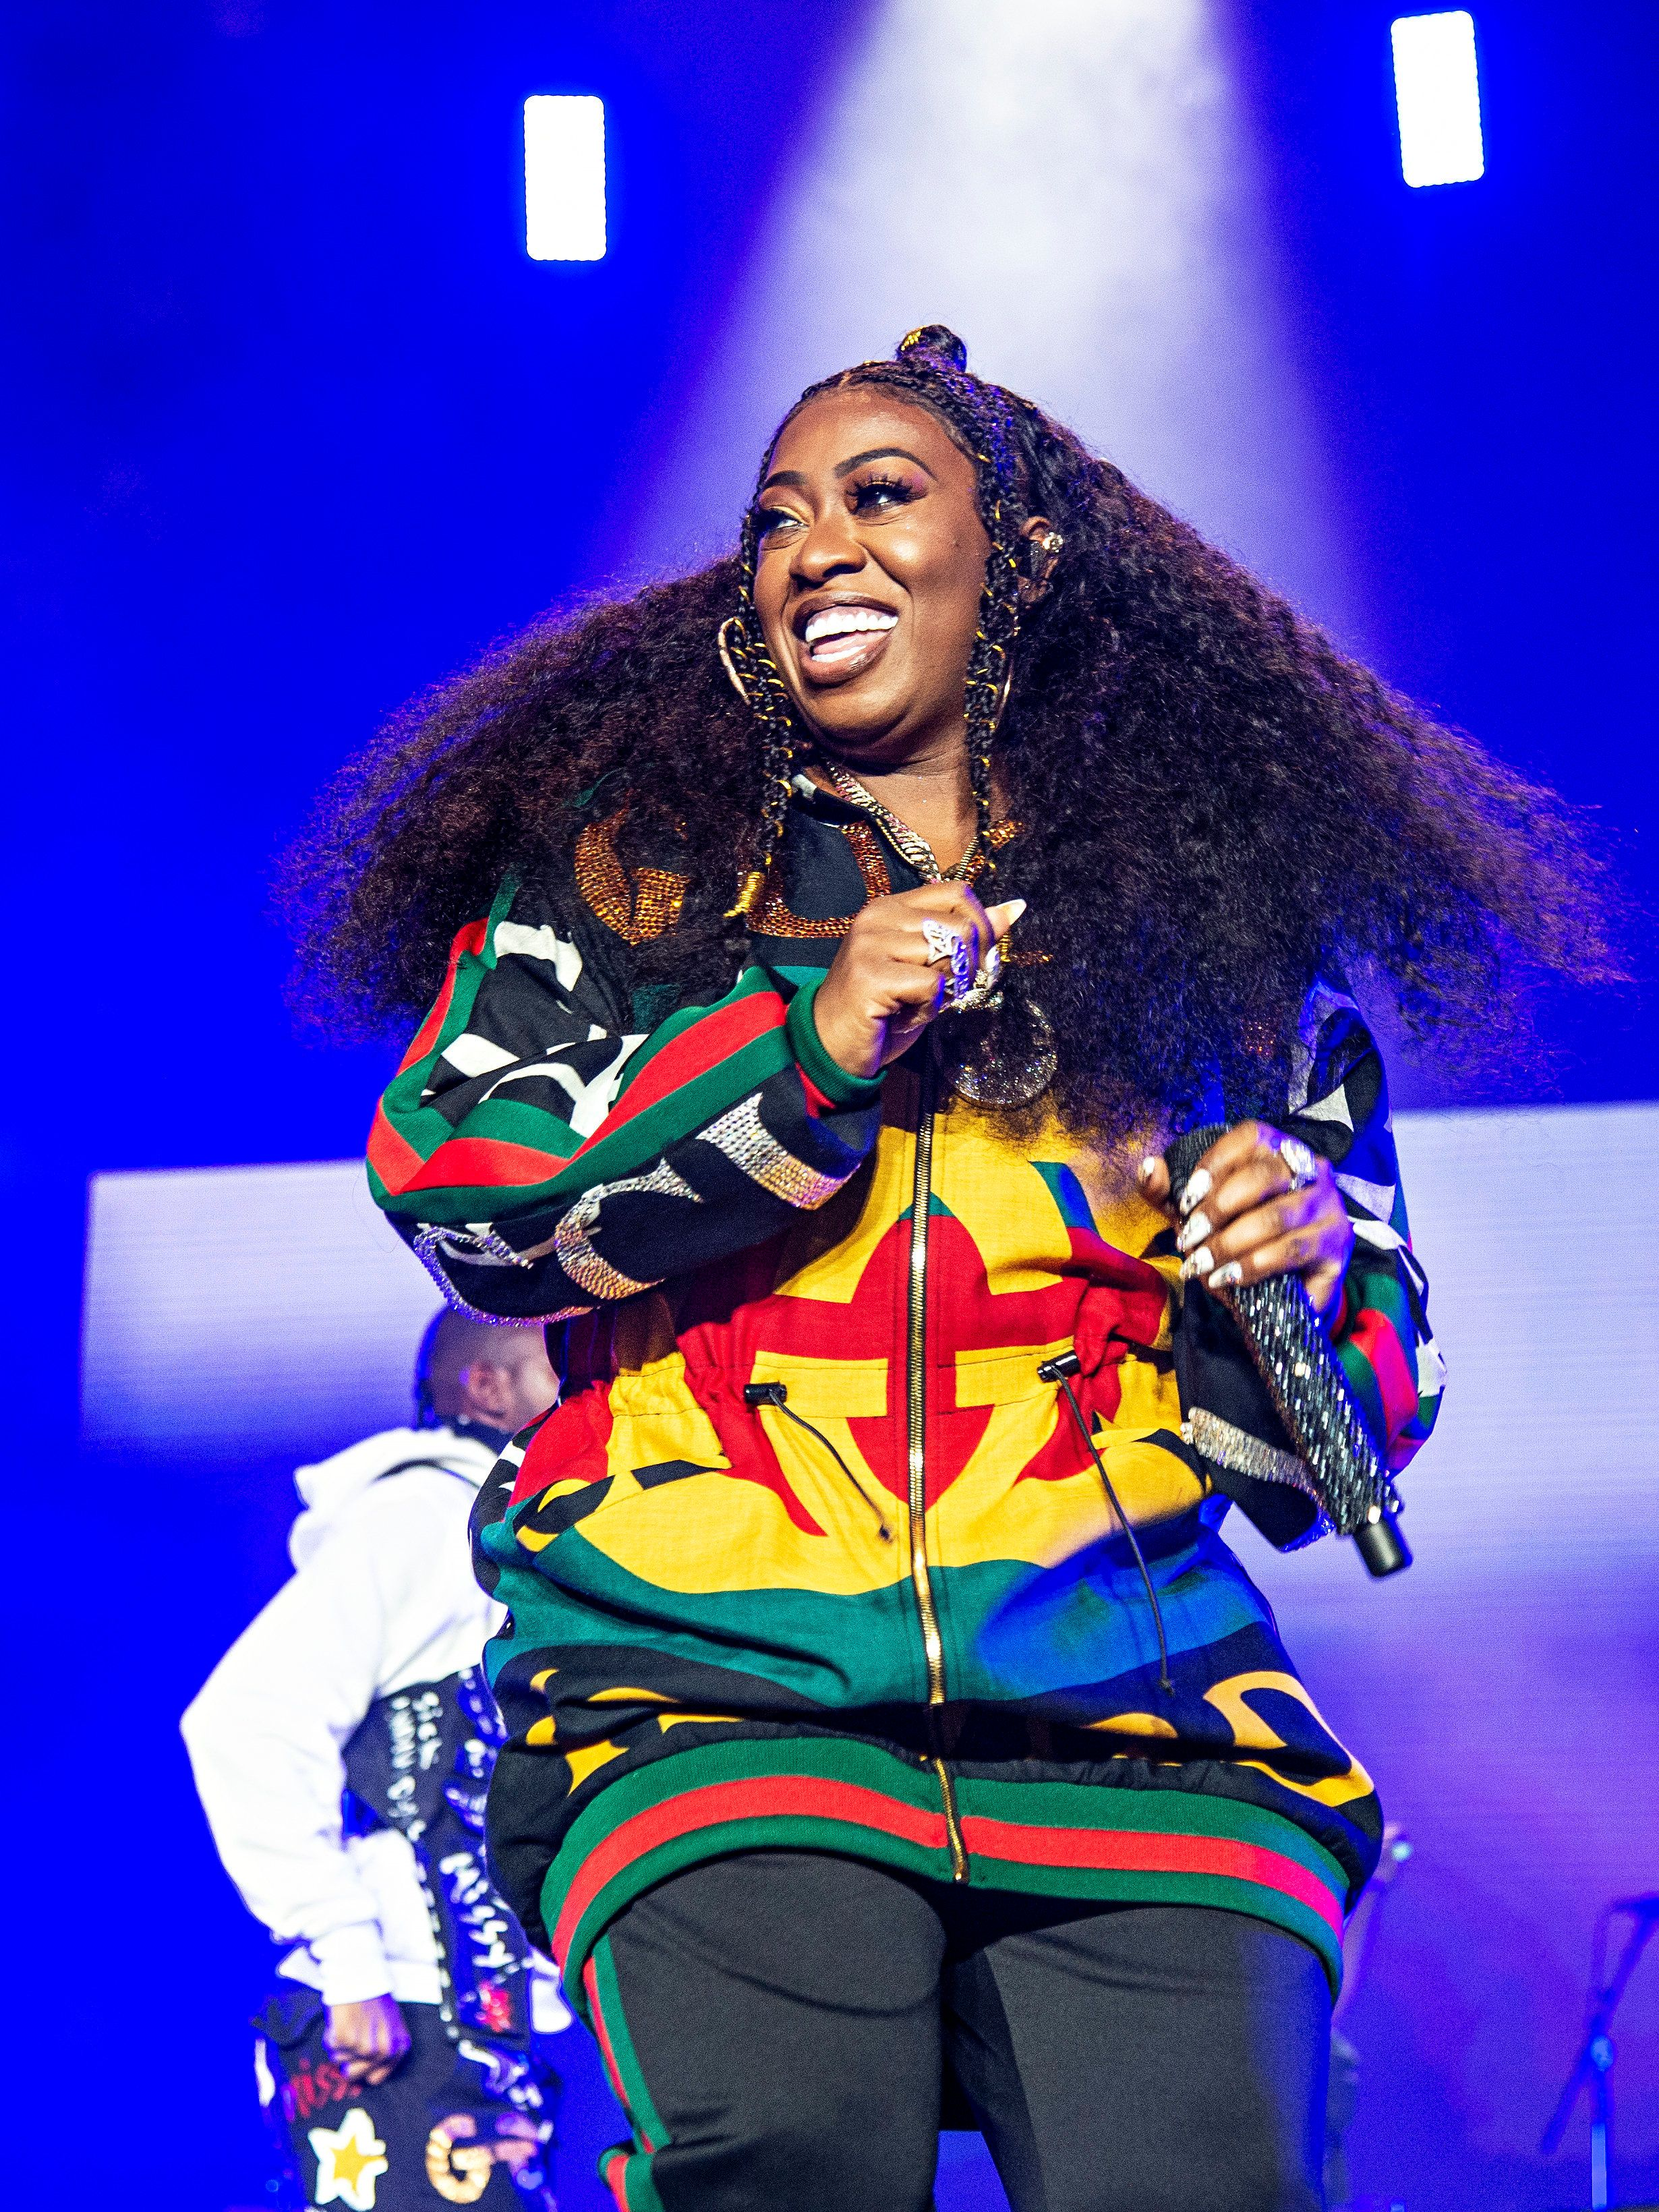 Missy Elliott To Be First Female Hip-Hop Artist Inducted In Songwriters Hall Of